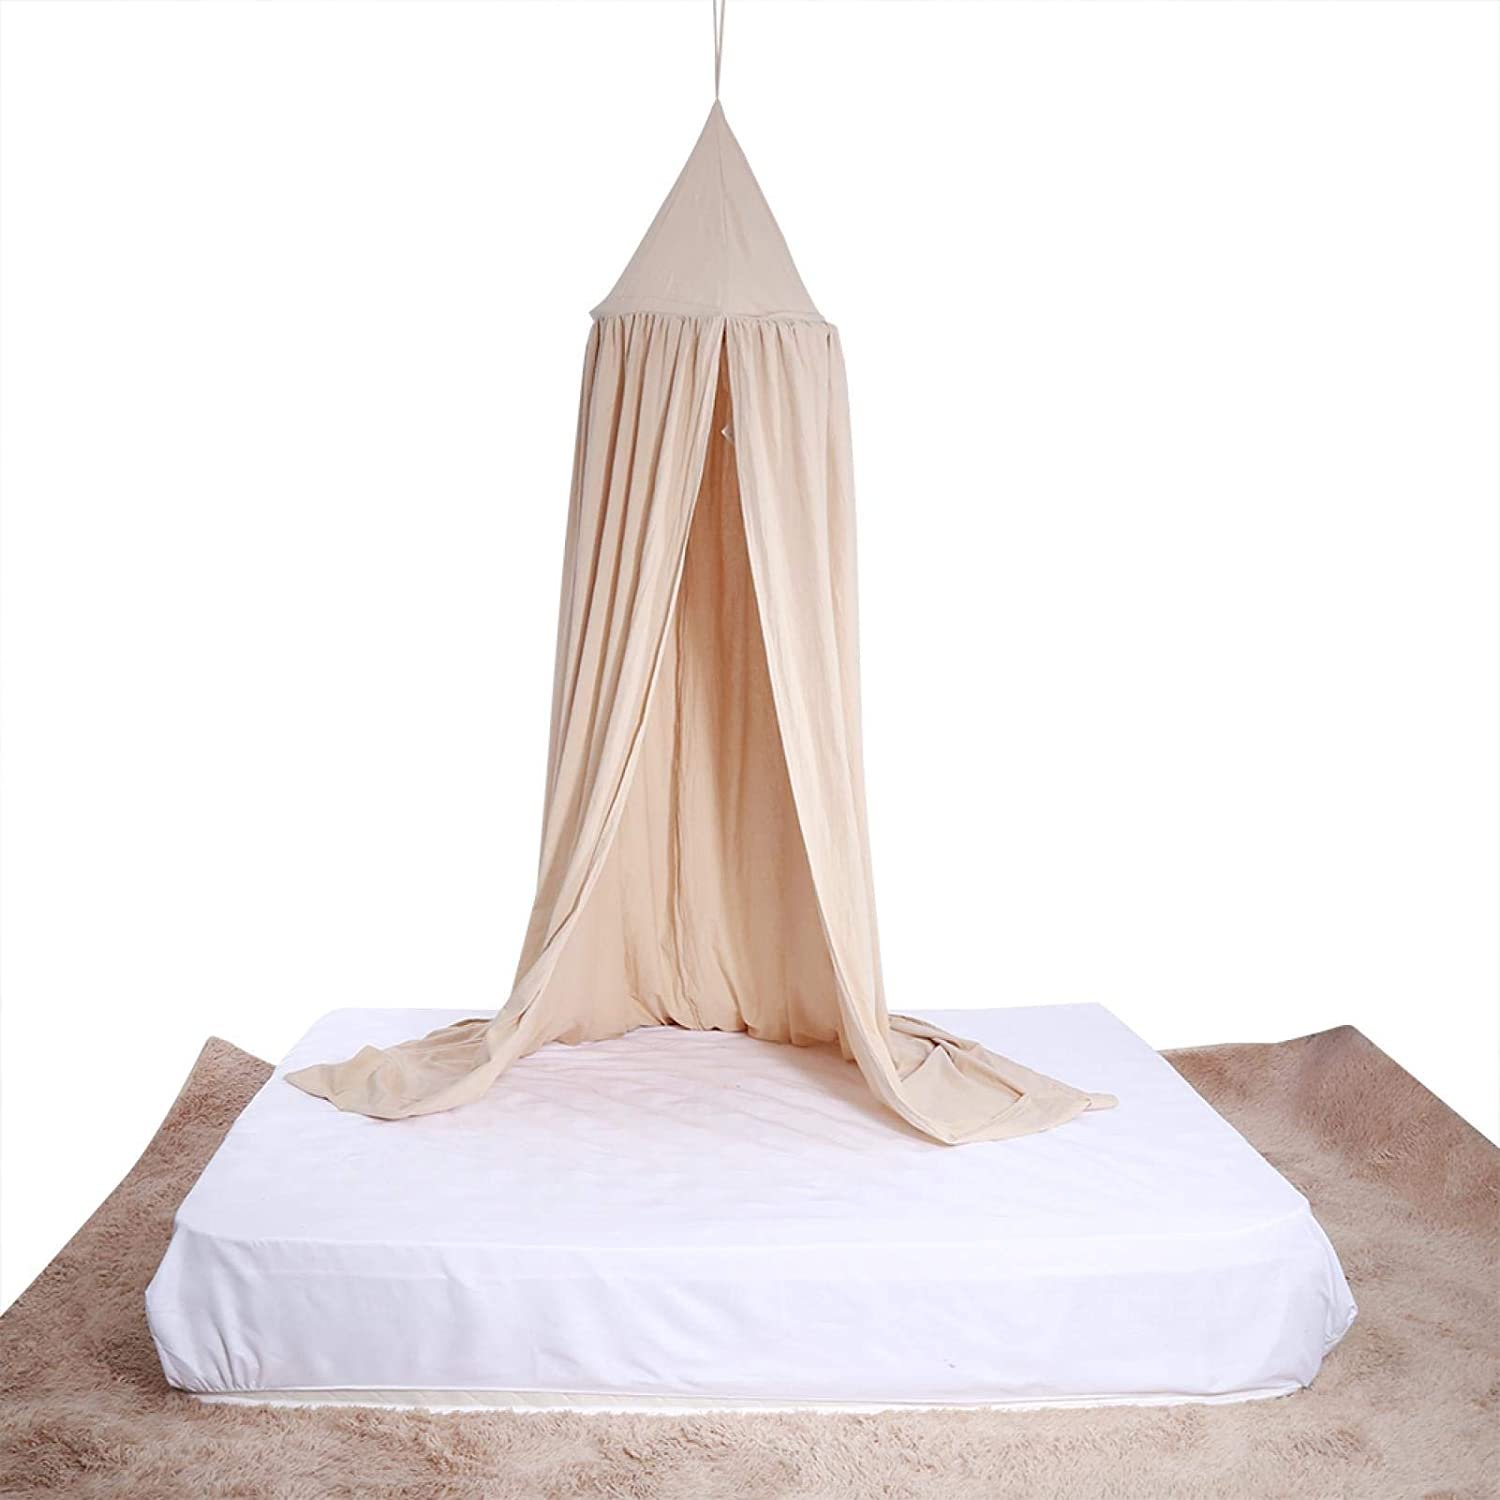 Kid's Dome Bed Canopy, Kids Baby Bed Round Dome, Bed Canopy Dome Hanging Bed Canopy Mosquito Net Curtain Canopy Children's Indoor Outdoor Castle Play Tent for Baby Kid Reading Playing(04)